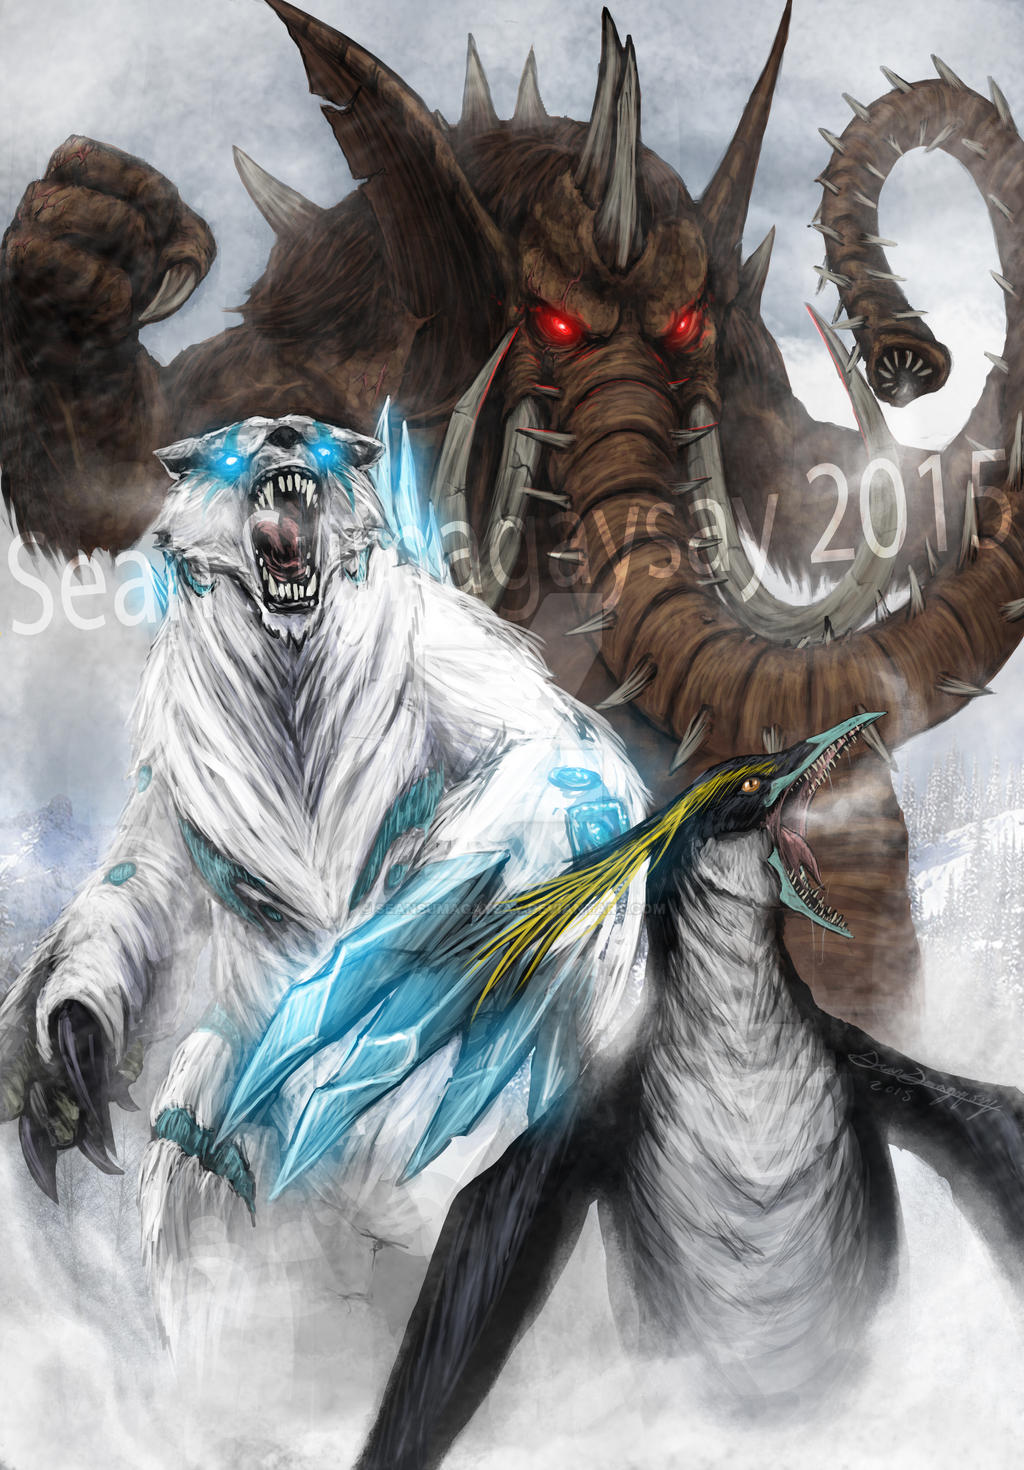 Kaiju Combat Deviantart: *COMMISSION* A New Ice Age By SeanSumagaysay On DeviantArt